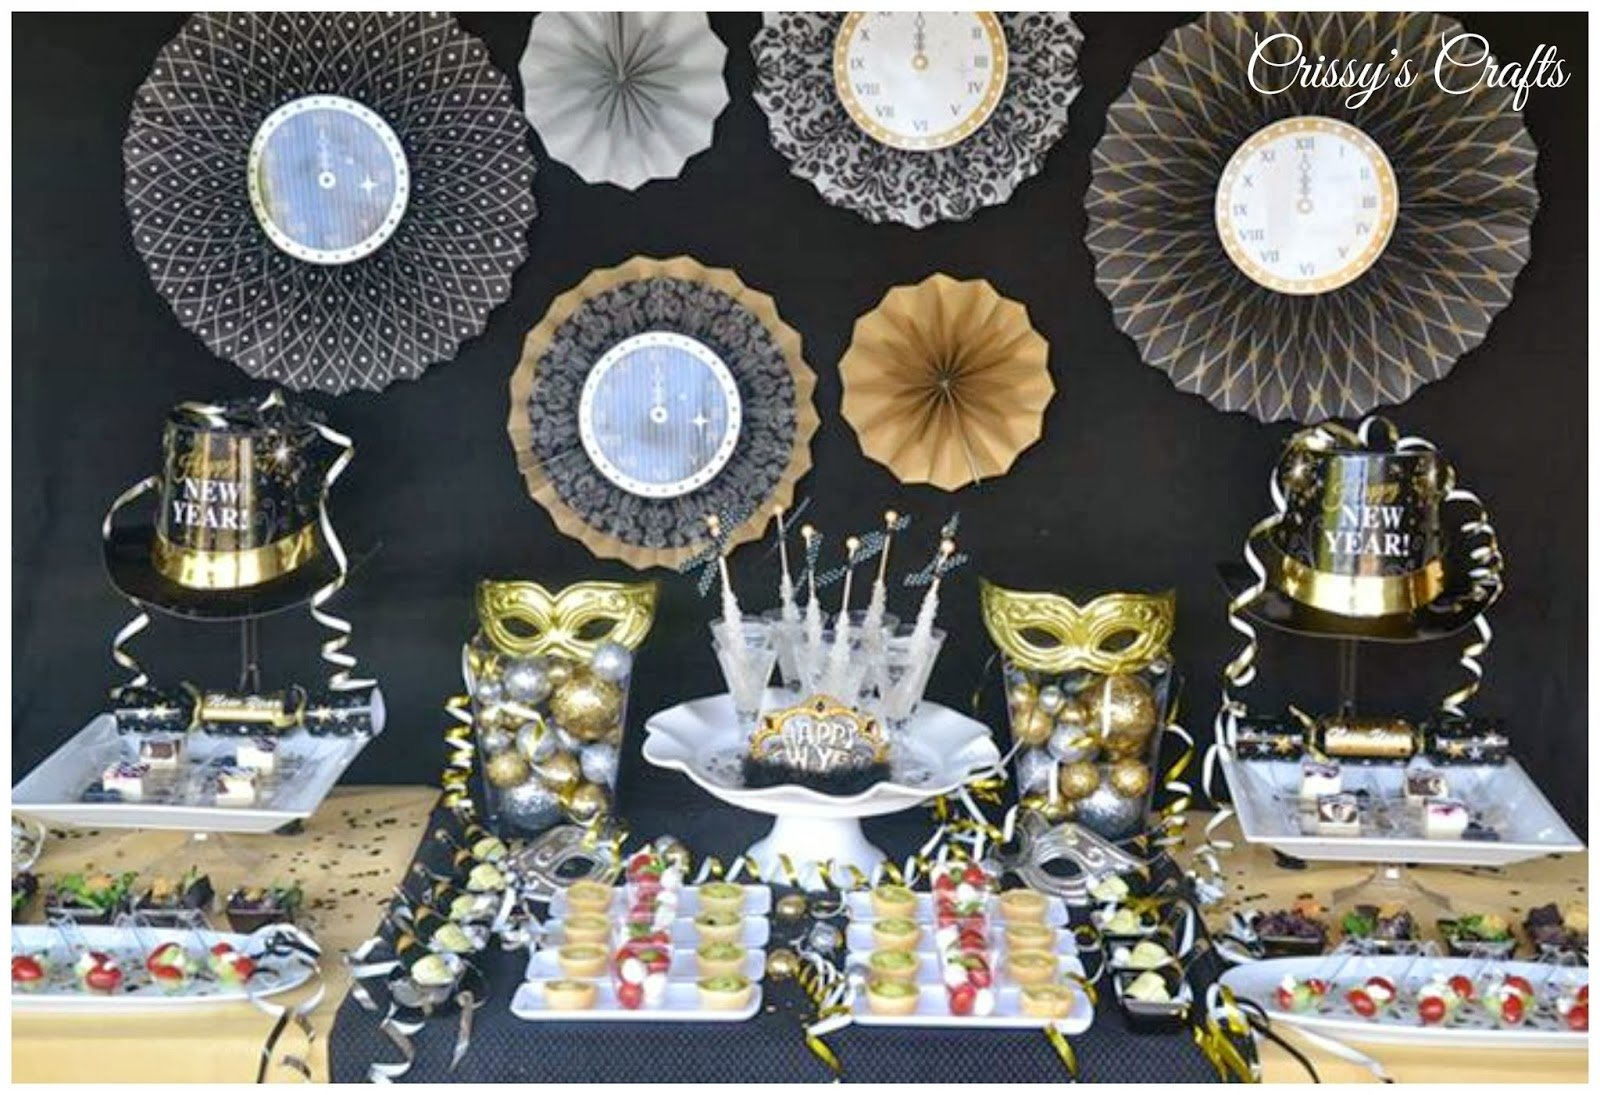 10 Fashionable New Years Eve Party Ideas 2013 crissys crafts new years eve party ideas 2021